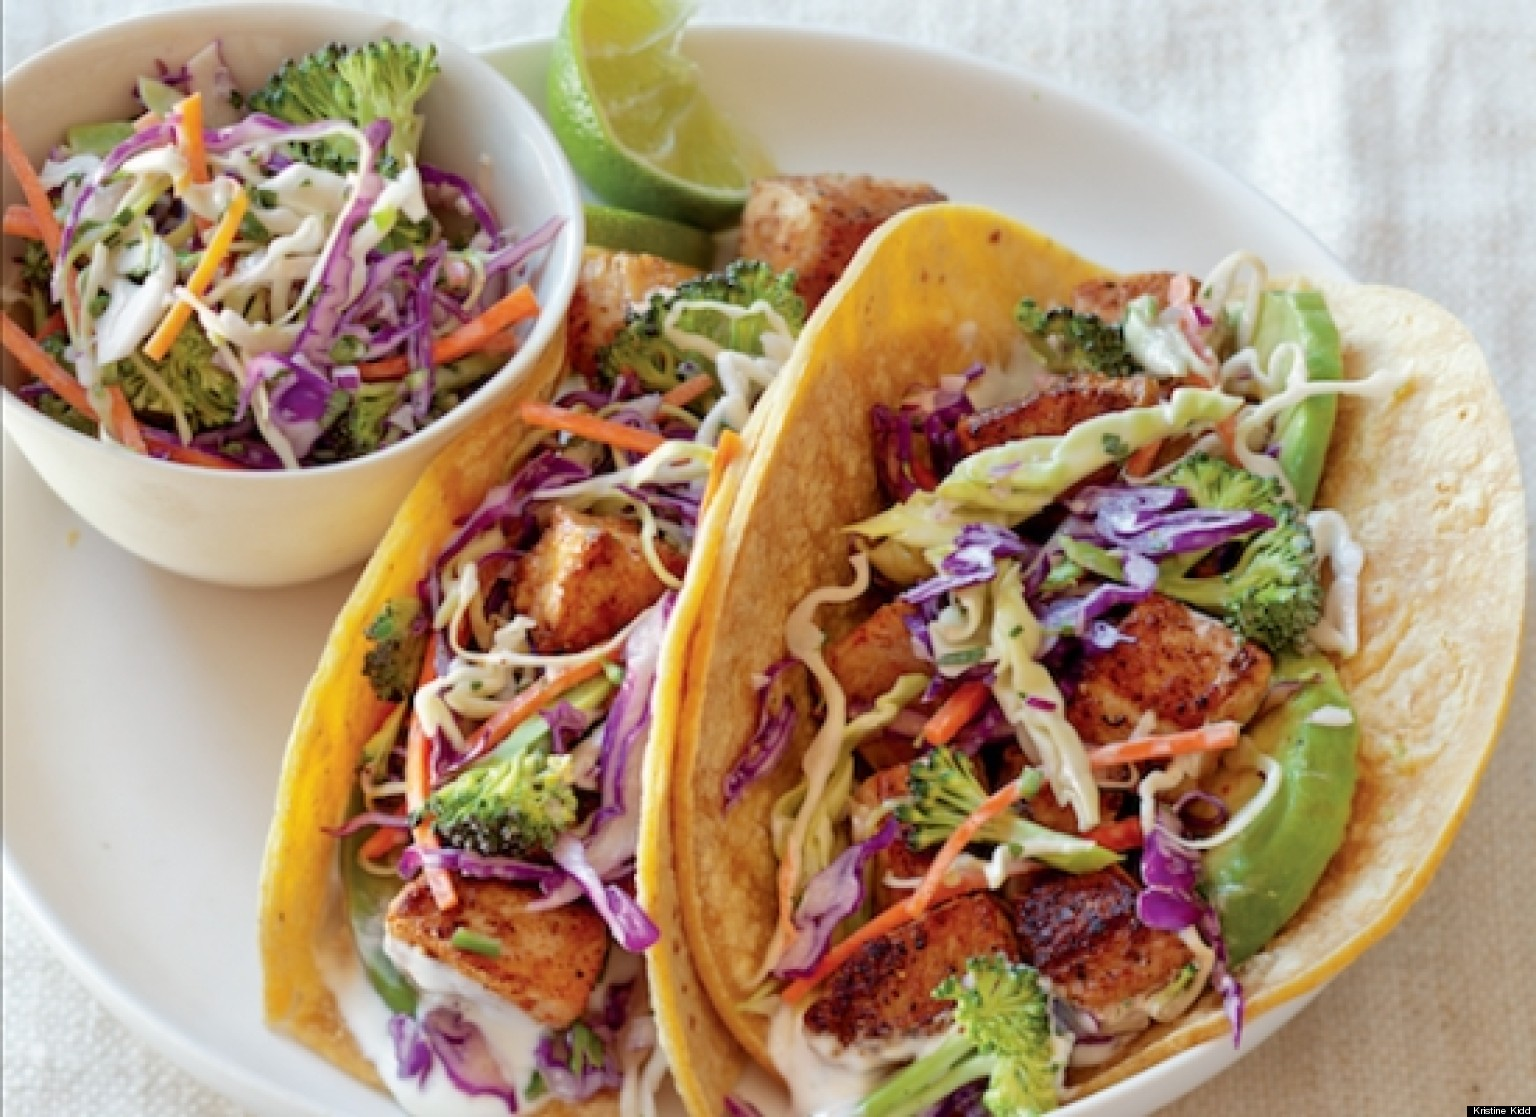 Fish tacos recipe with broccoli slaw and lime cream sauce for Fish burrito recipe